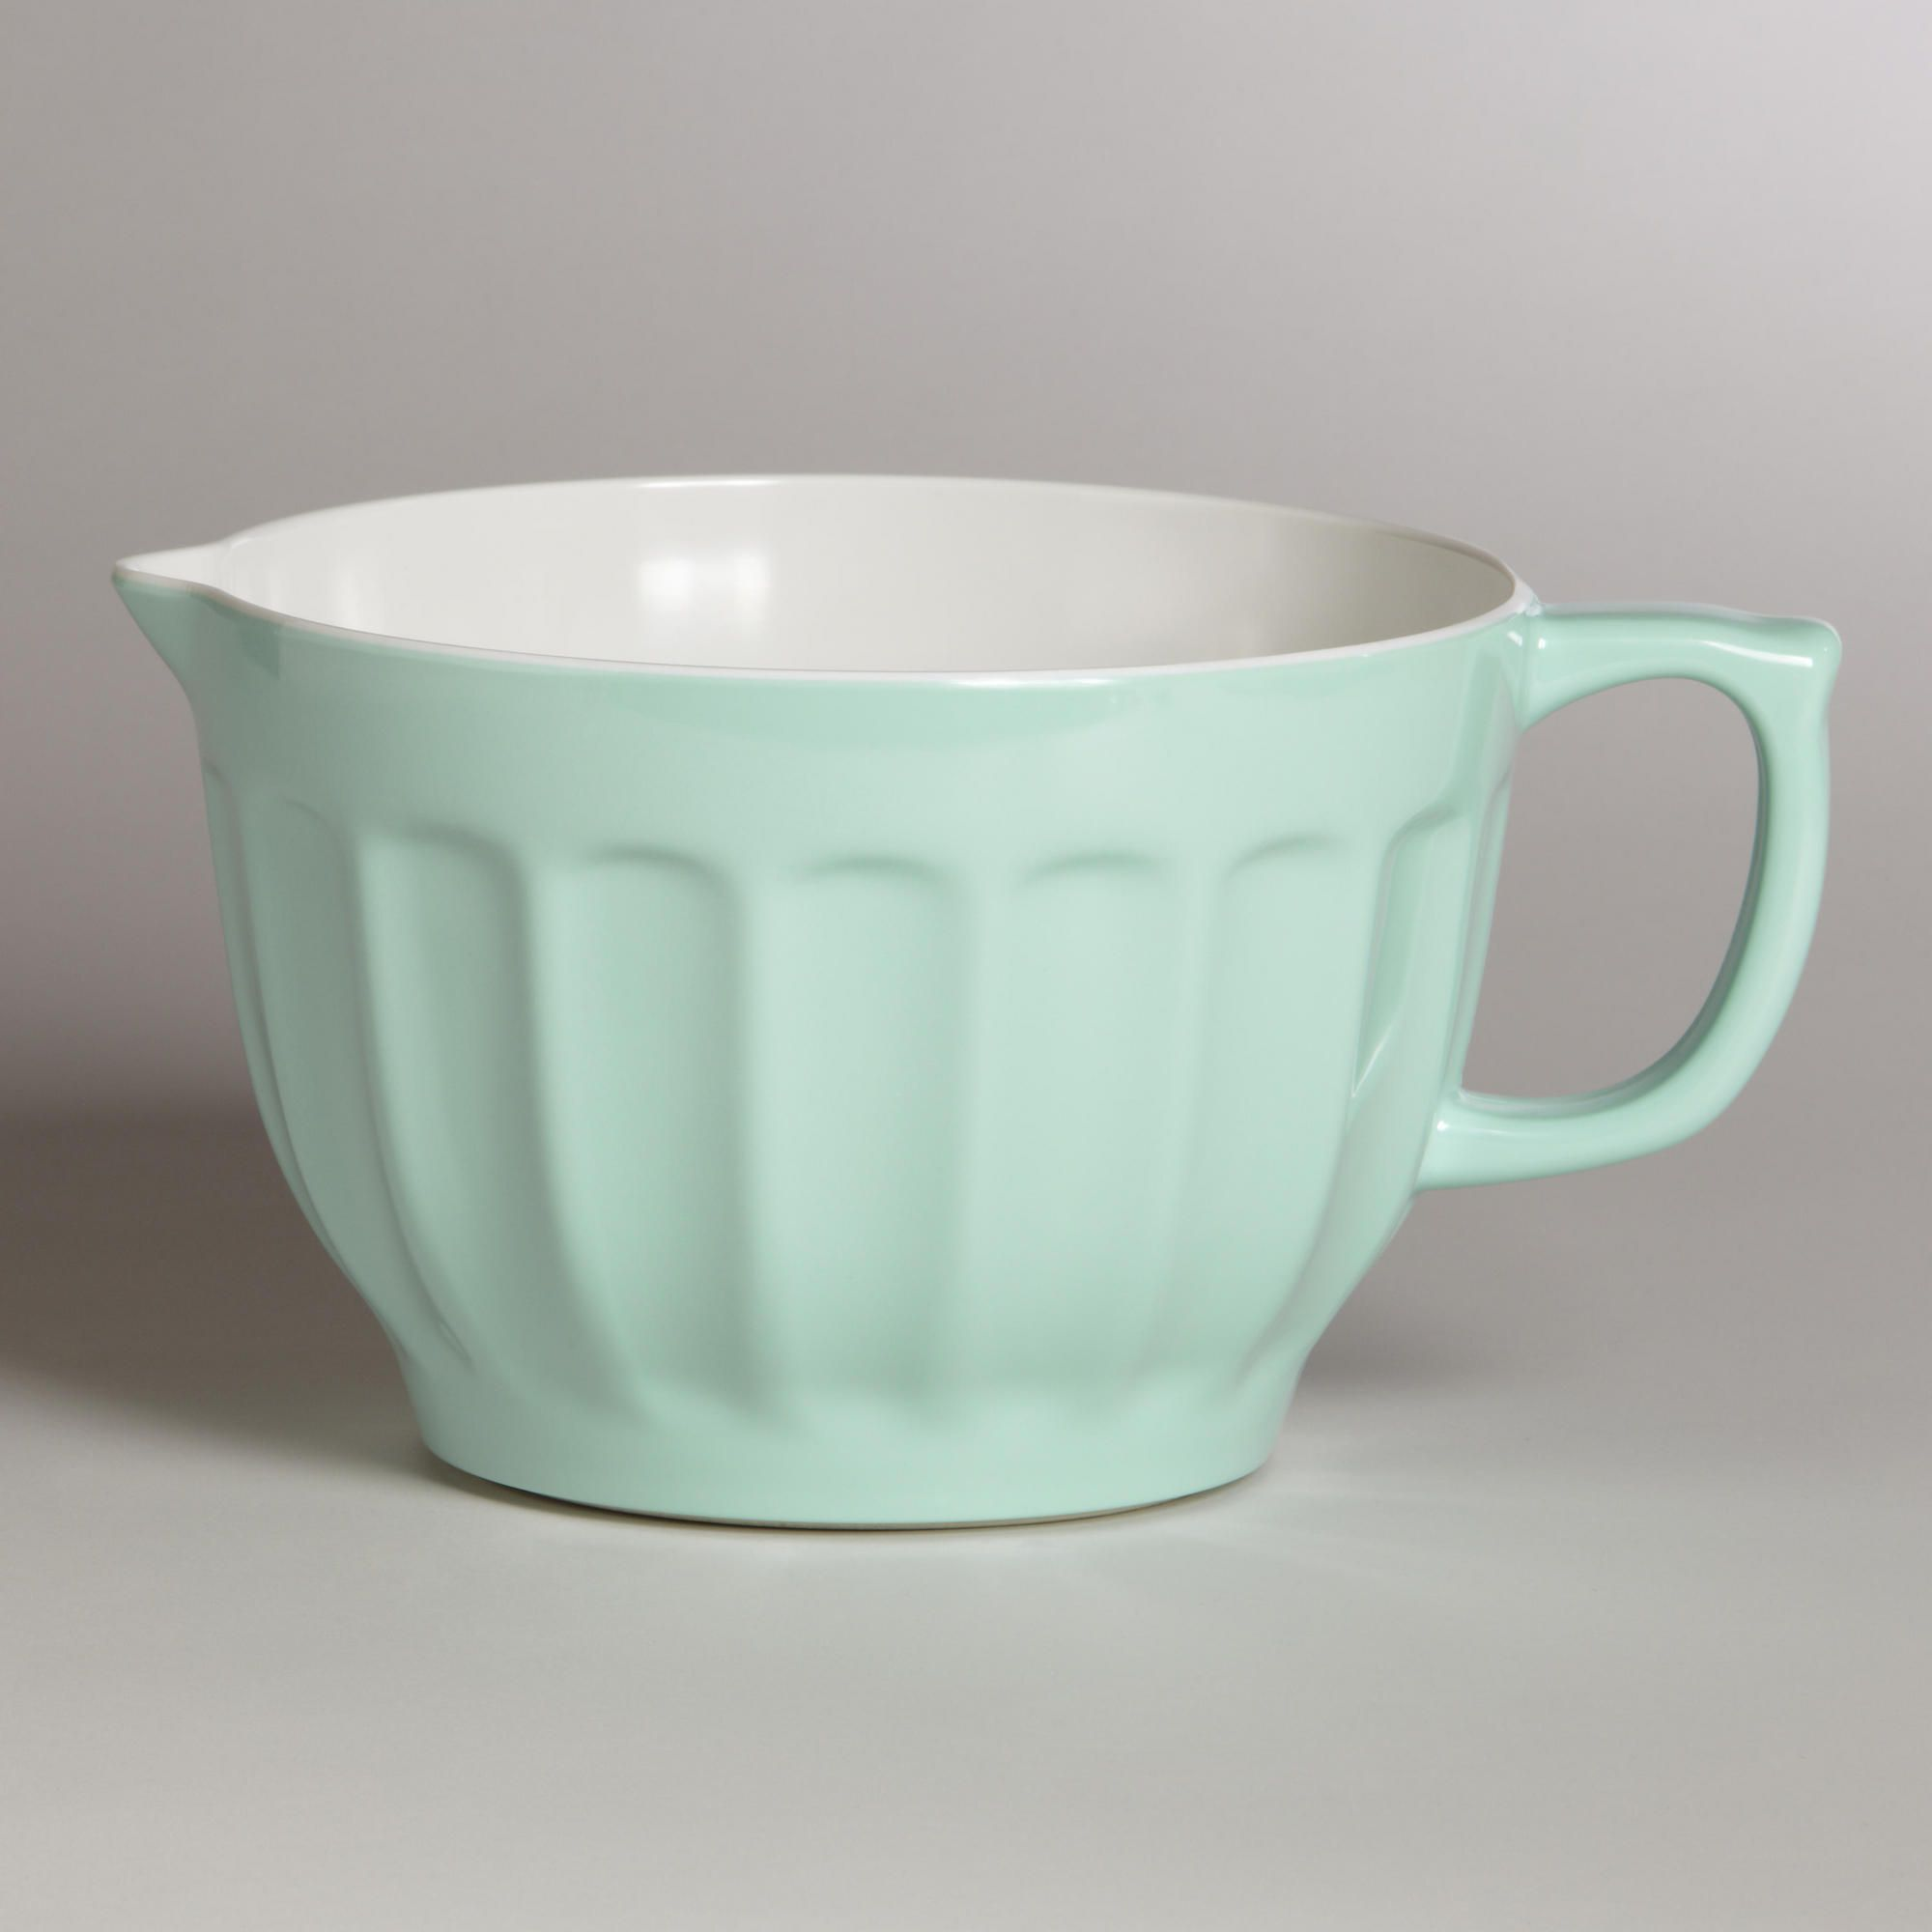 kitchen cups and plates trashcans mint melamine batter bowl green colors